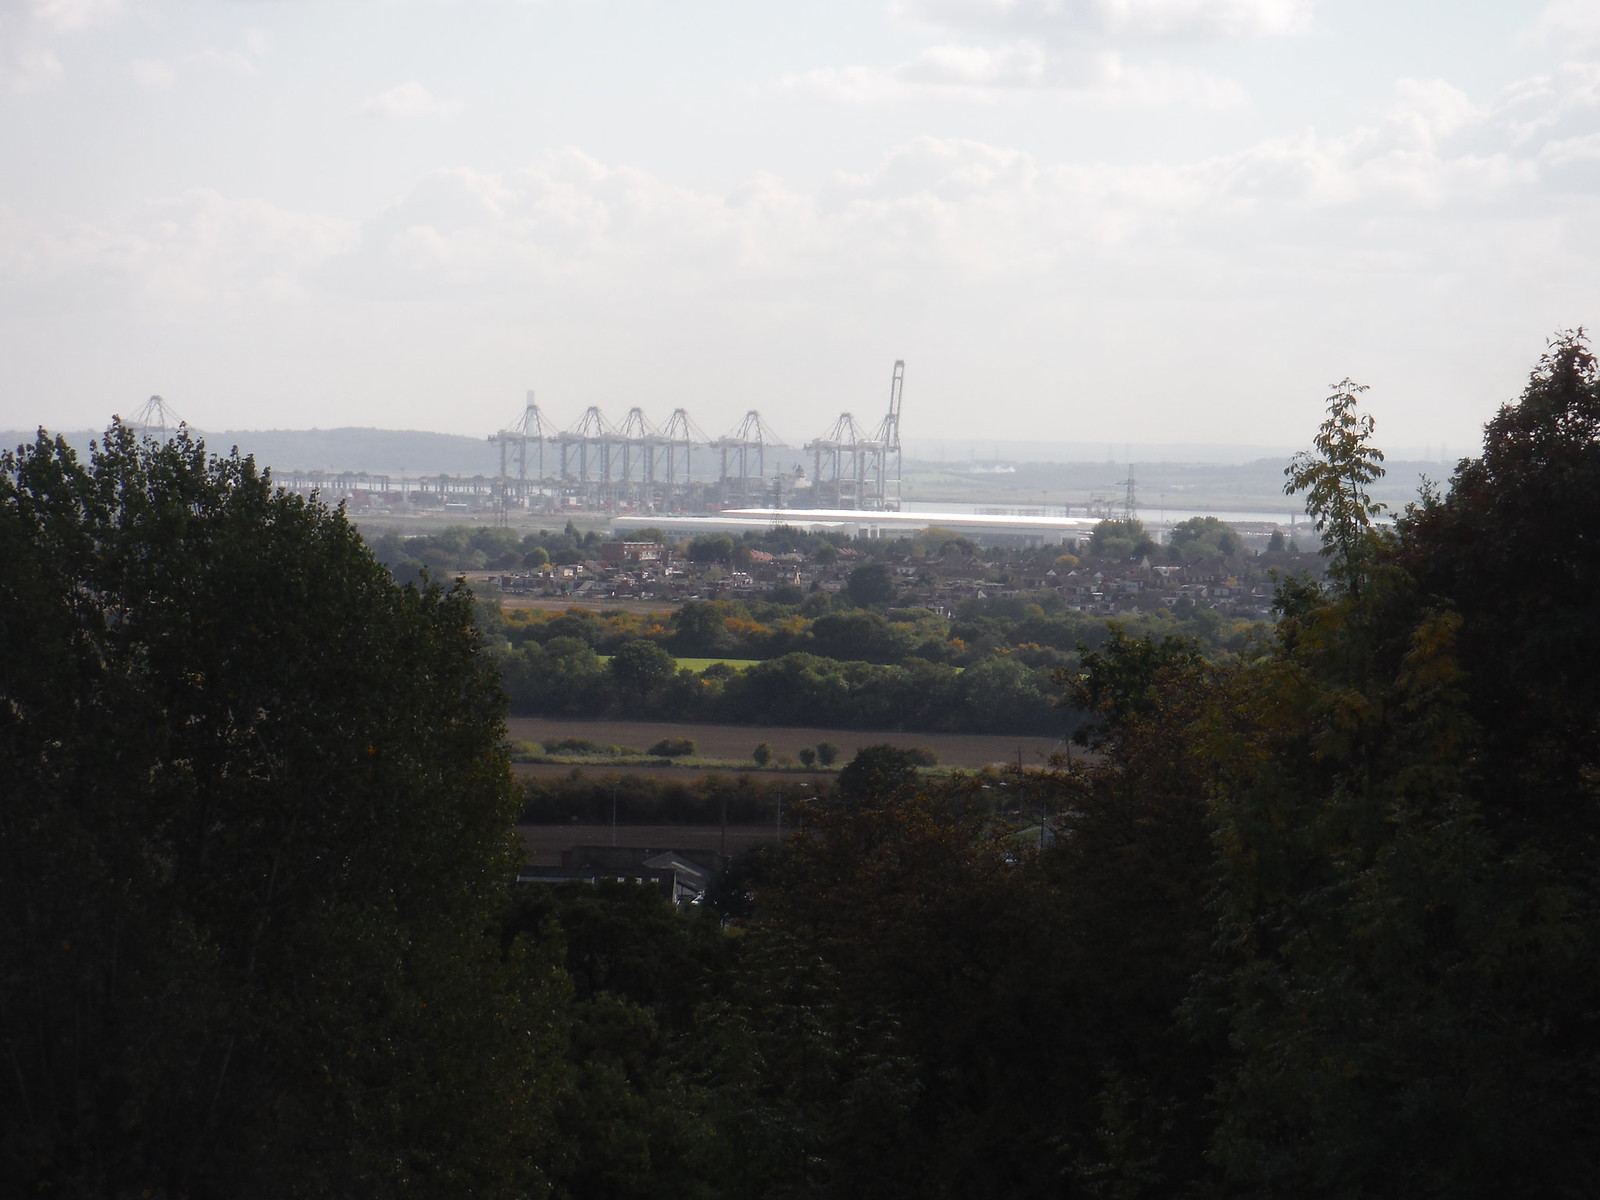 London Gateway, deep water container port through trees SWC Walk 114 Laindon Circular